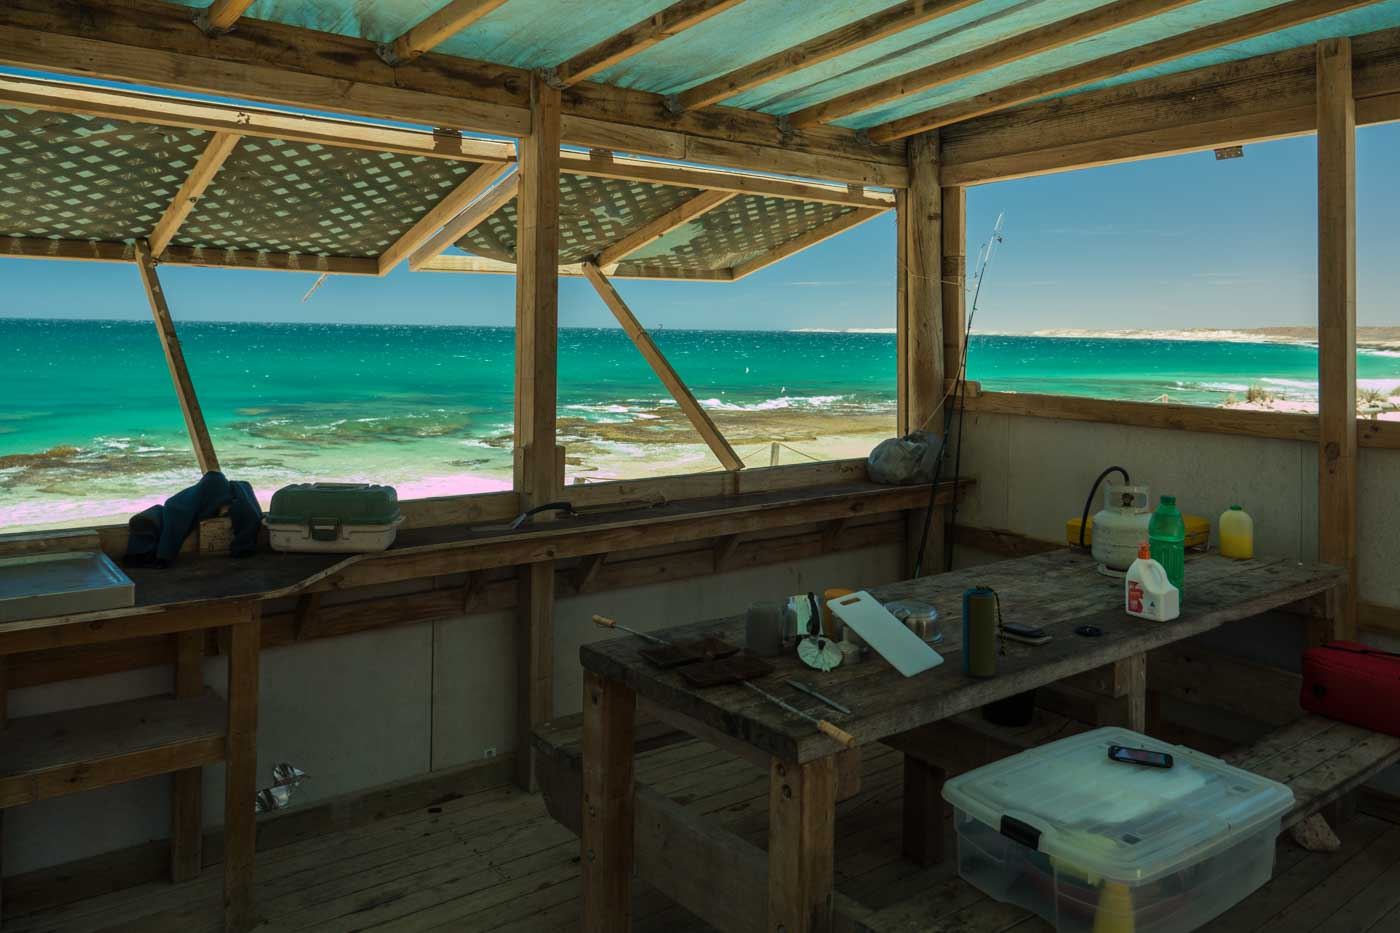 The Green Room at Red Bluff Camping Surf Spot Western Australia surfing big wave Ningaloo Reef